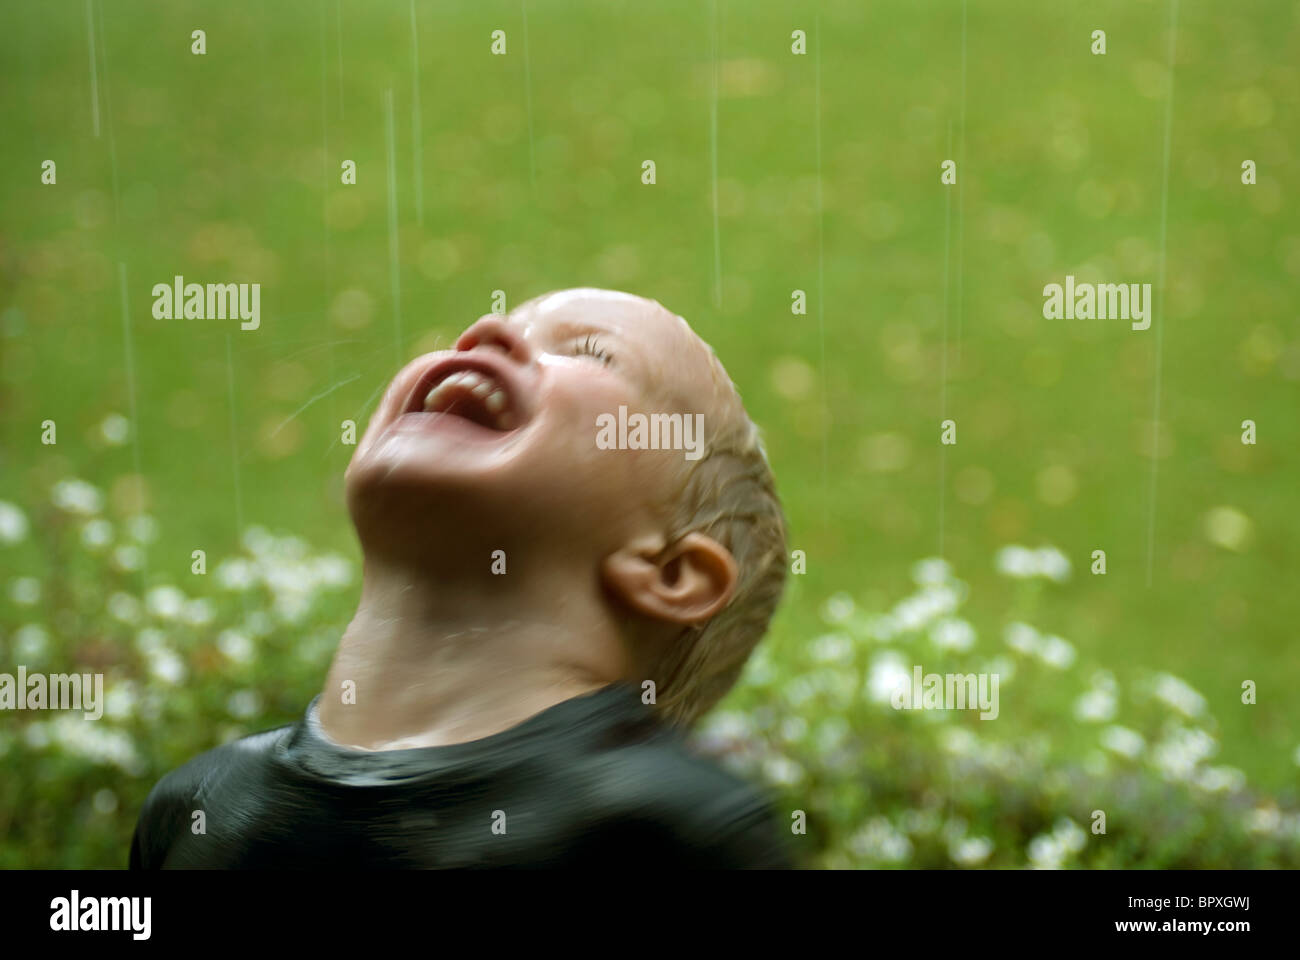 During a storm baby loves drinking rain water in the garden which is clean, pure, cool and refreshing. - Stock Image